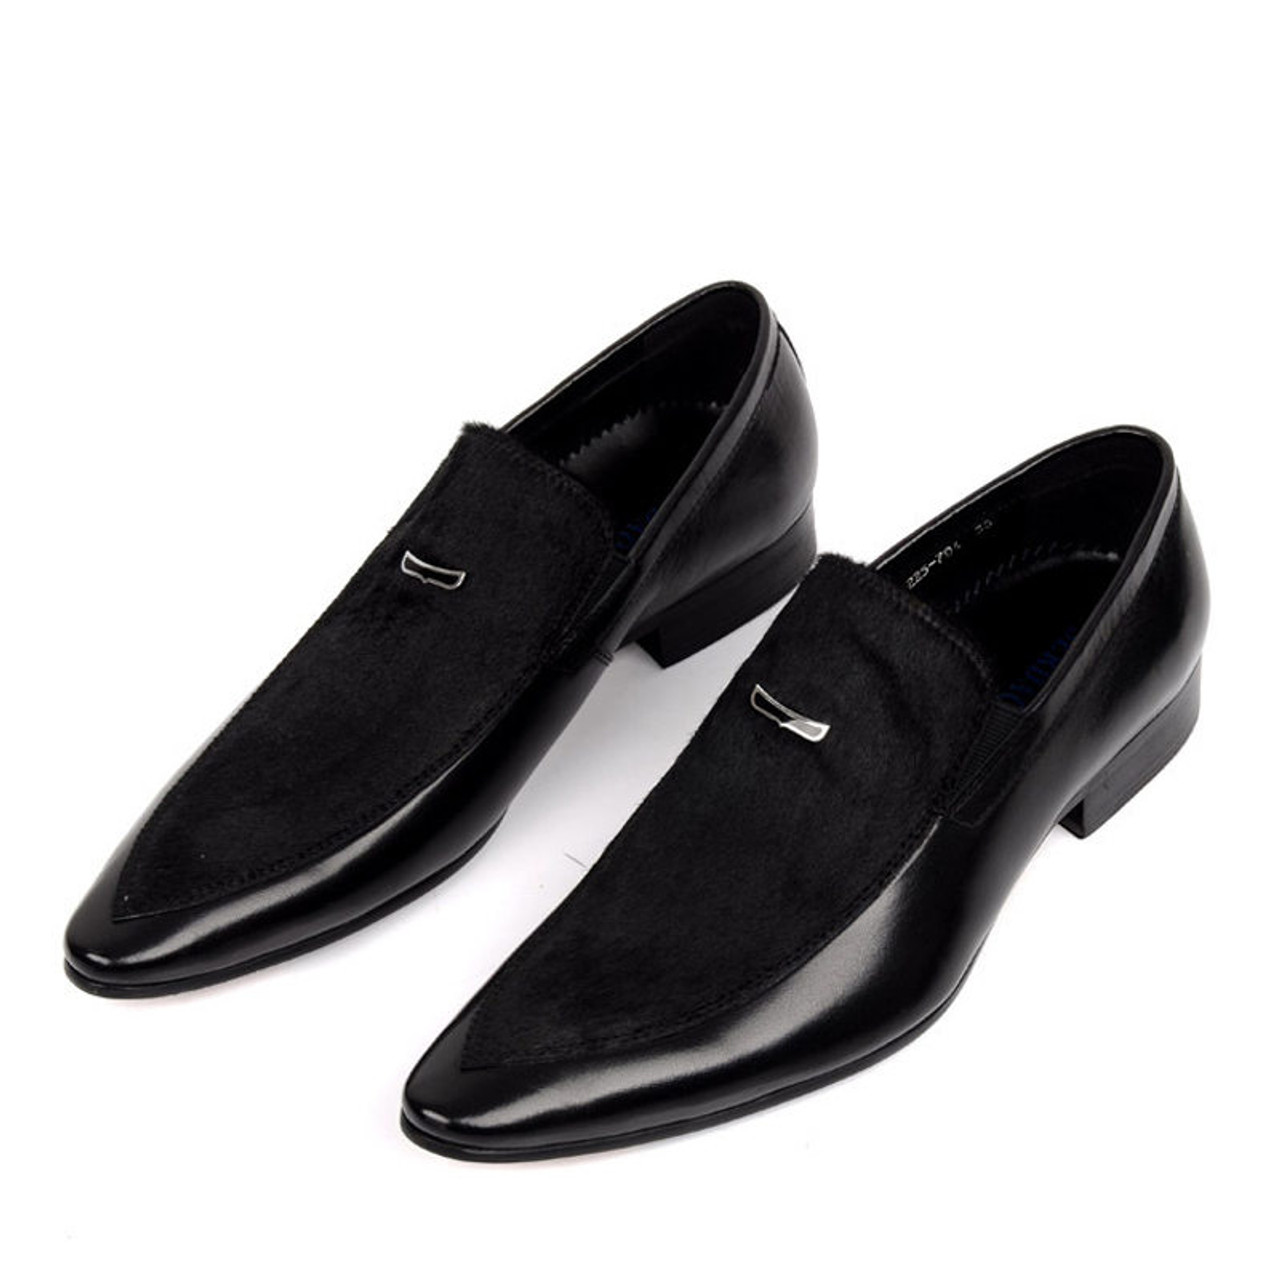 b80e0c193c38d Mens Black Dress Shoes